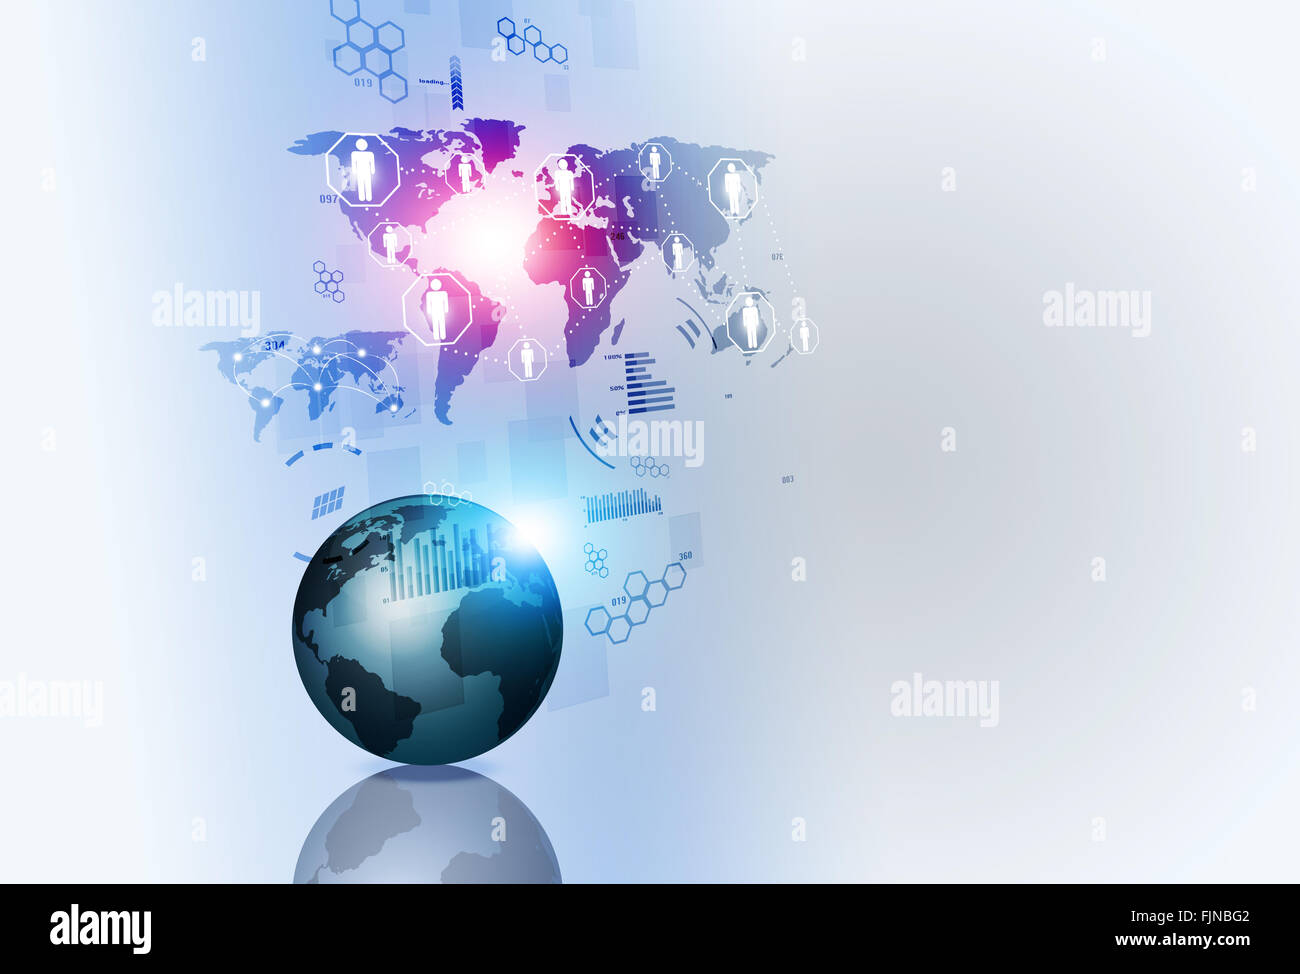 network concept web global connections technology background - Stock Image